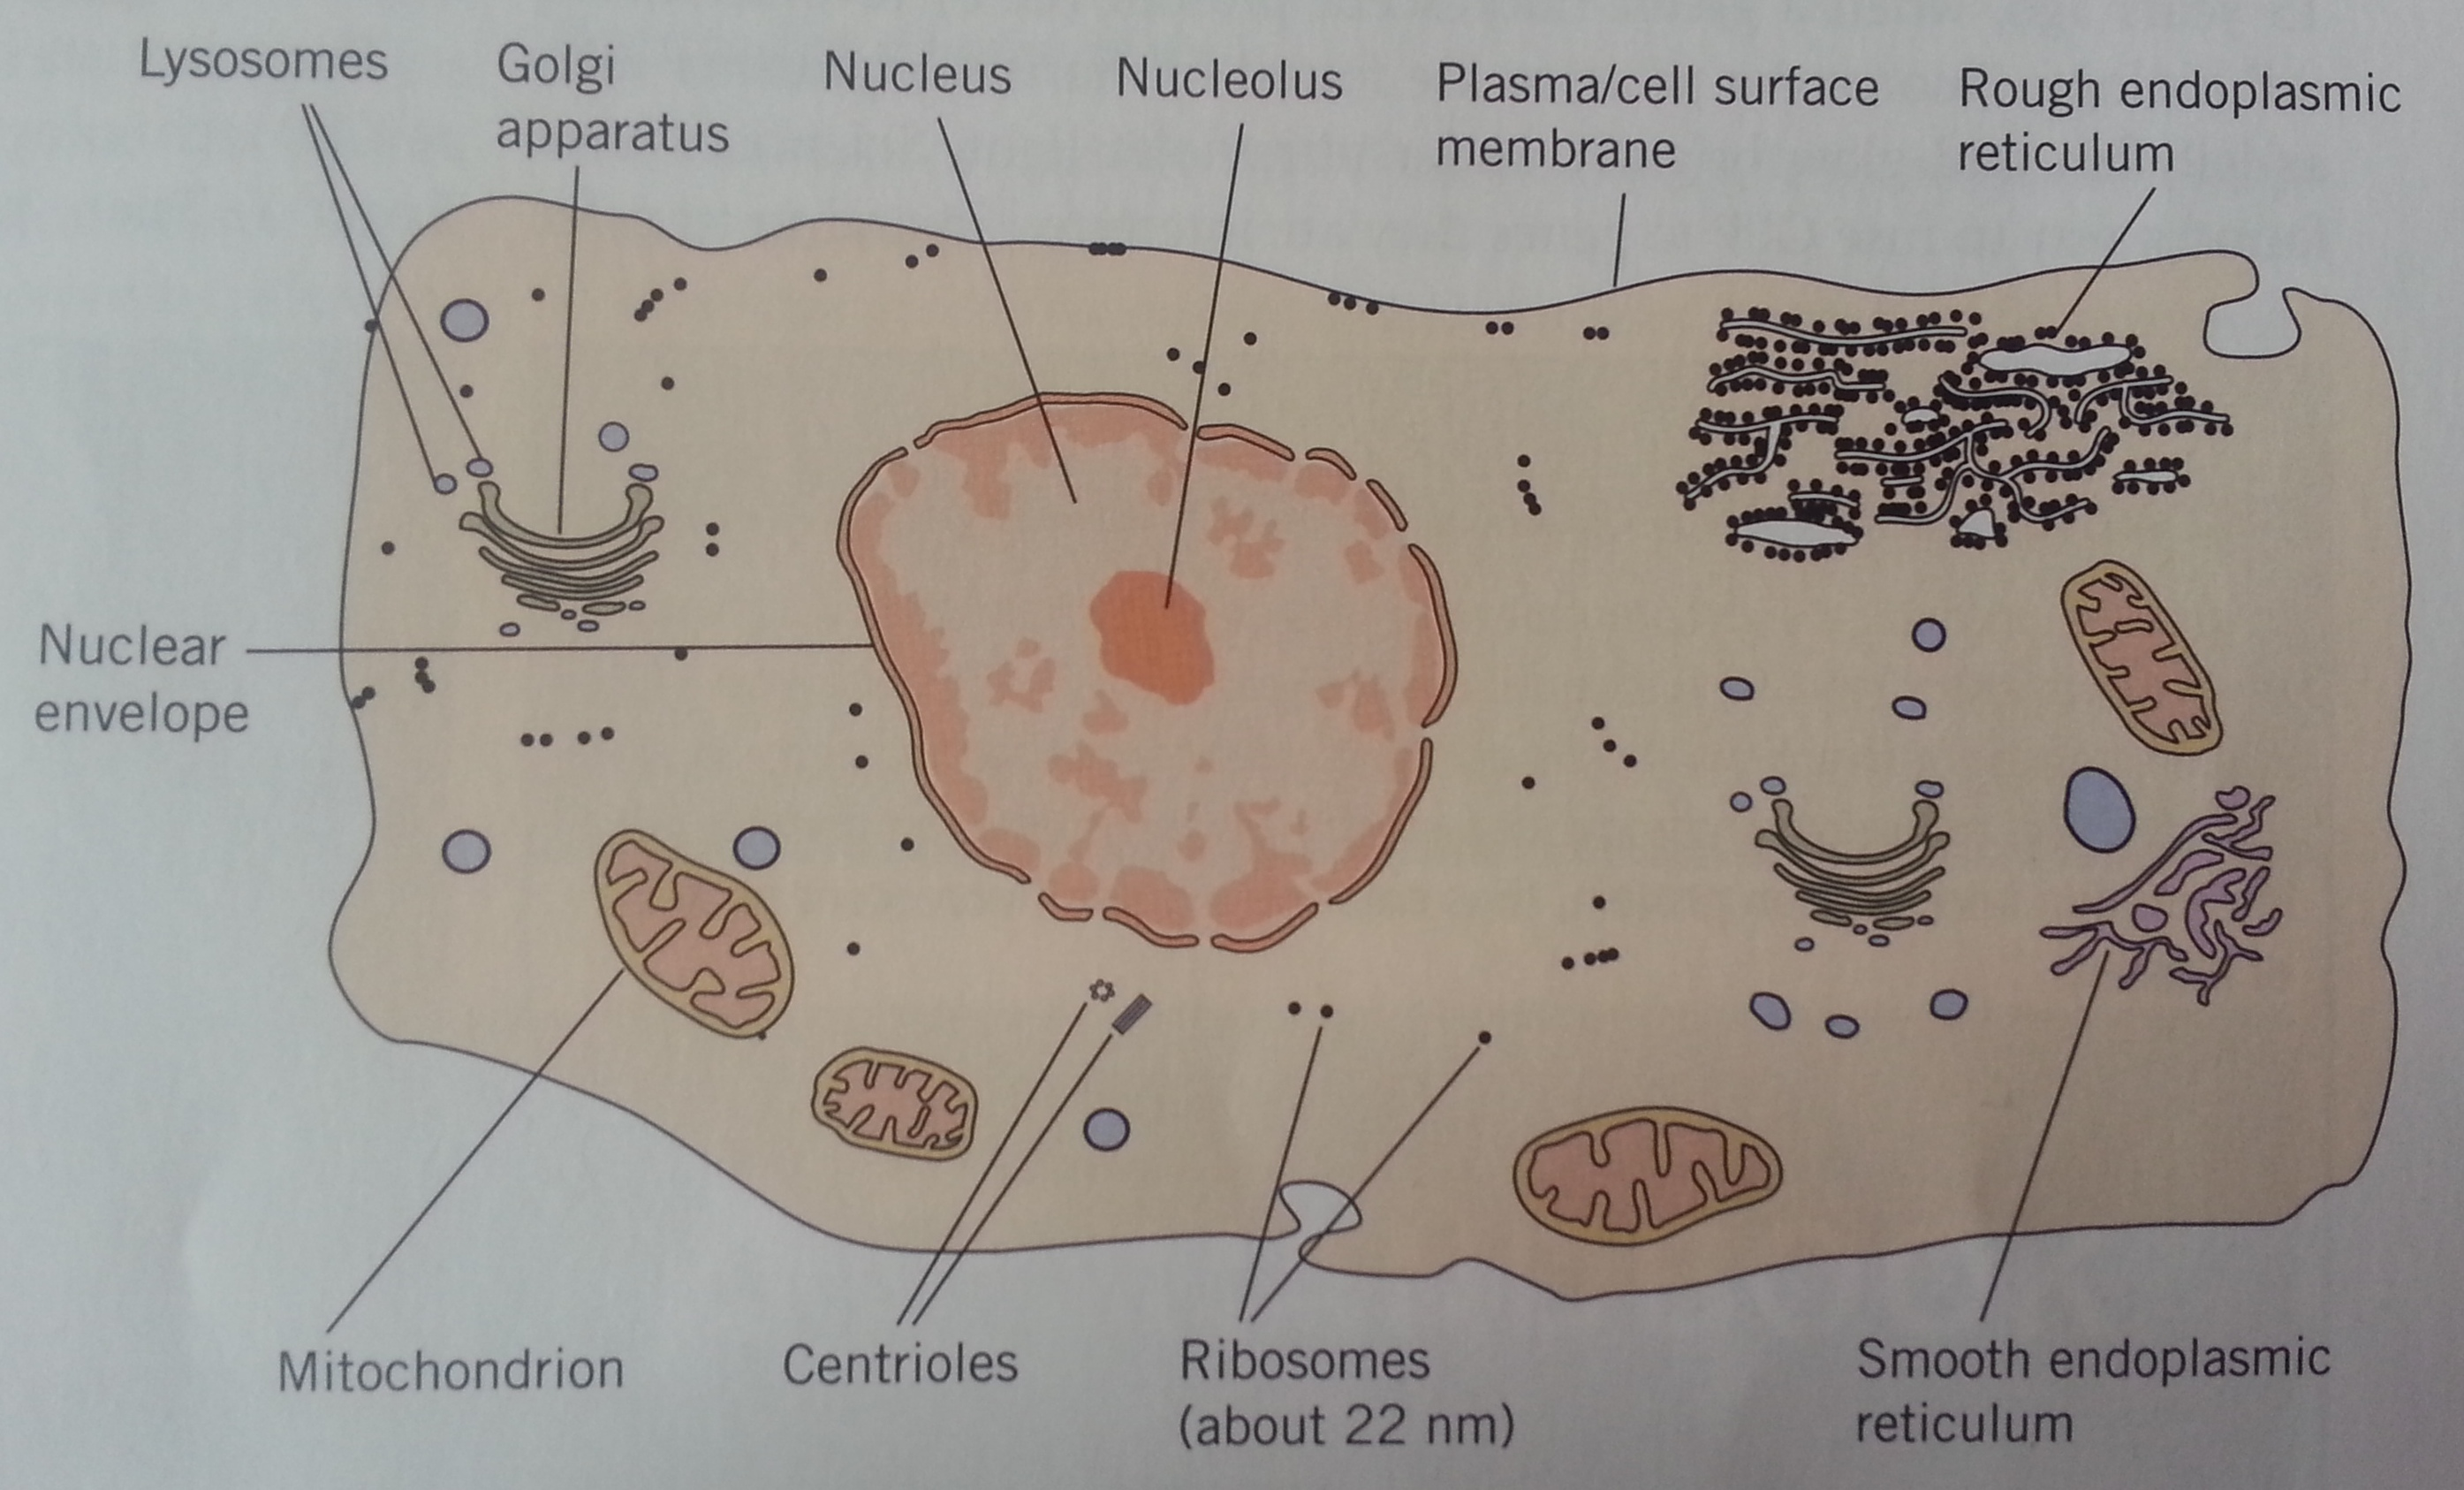 animal cell golgi bodies - photo #16